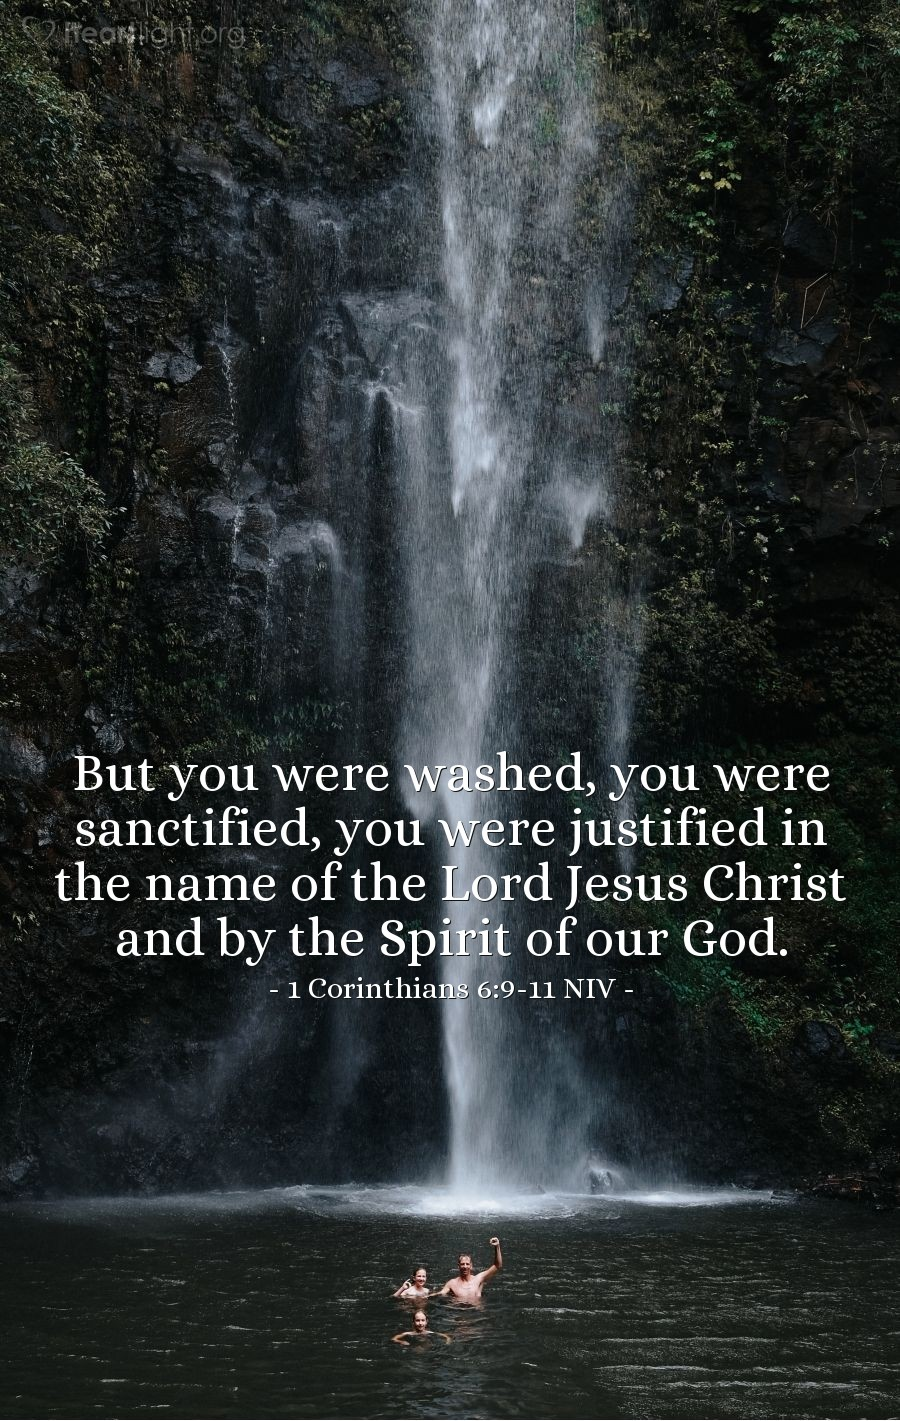 Illustration of 1 Corinthians 6:9-11 NIV —  But you were washed, you were sanctified, you were justified in the name of the Lord Jesus Christ and by the Spirit of our God.